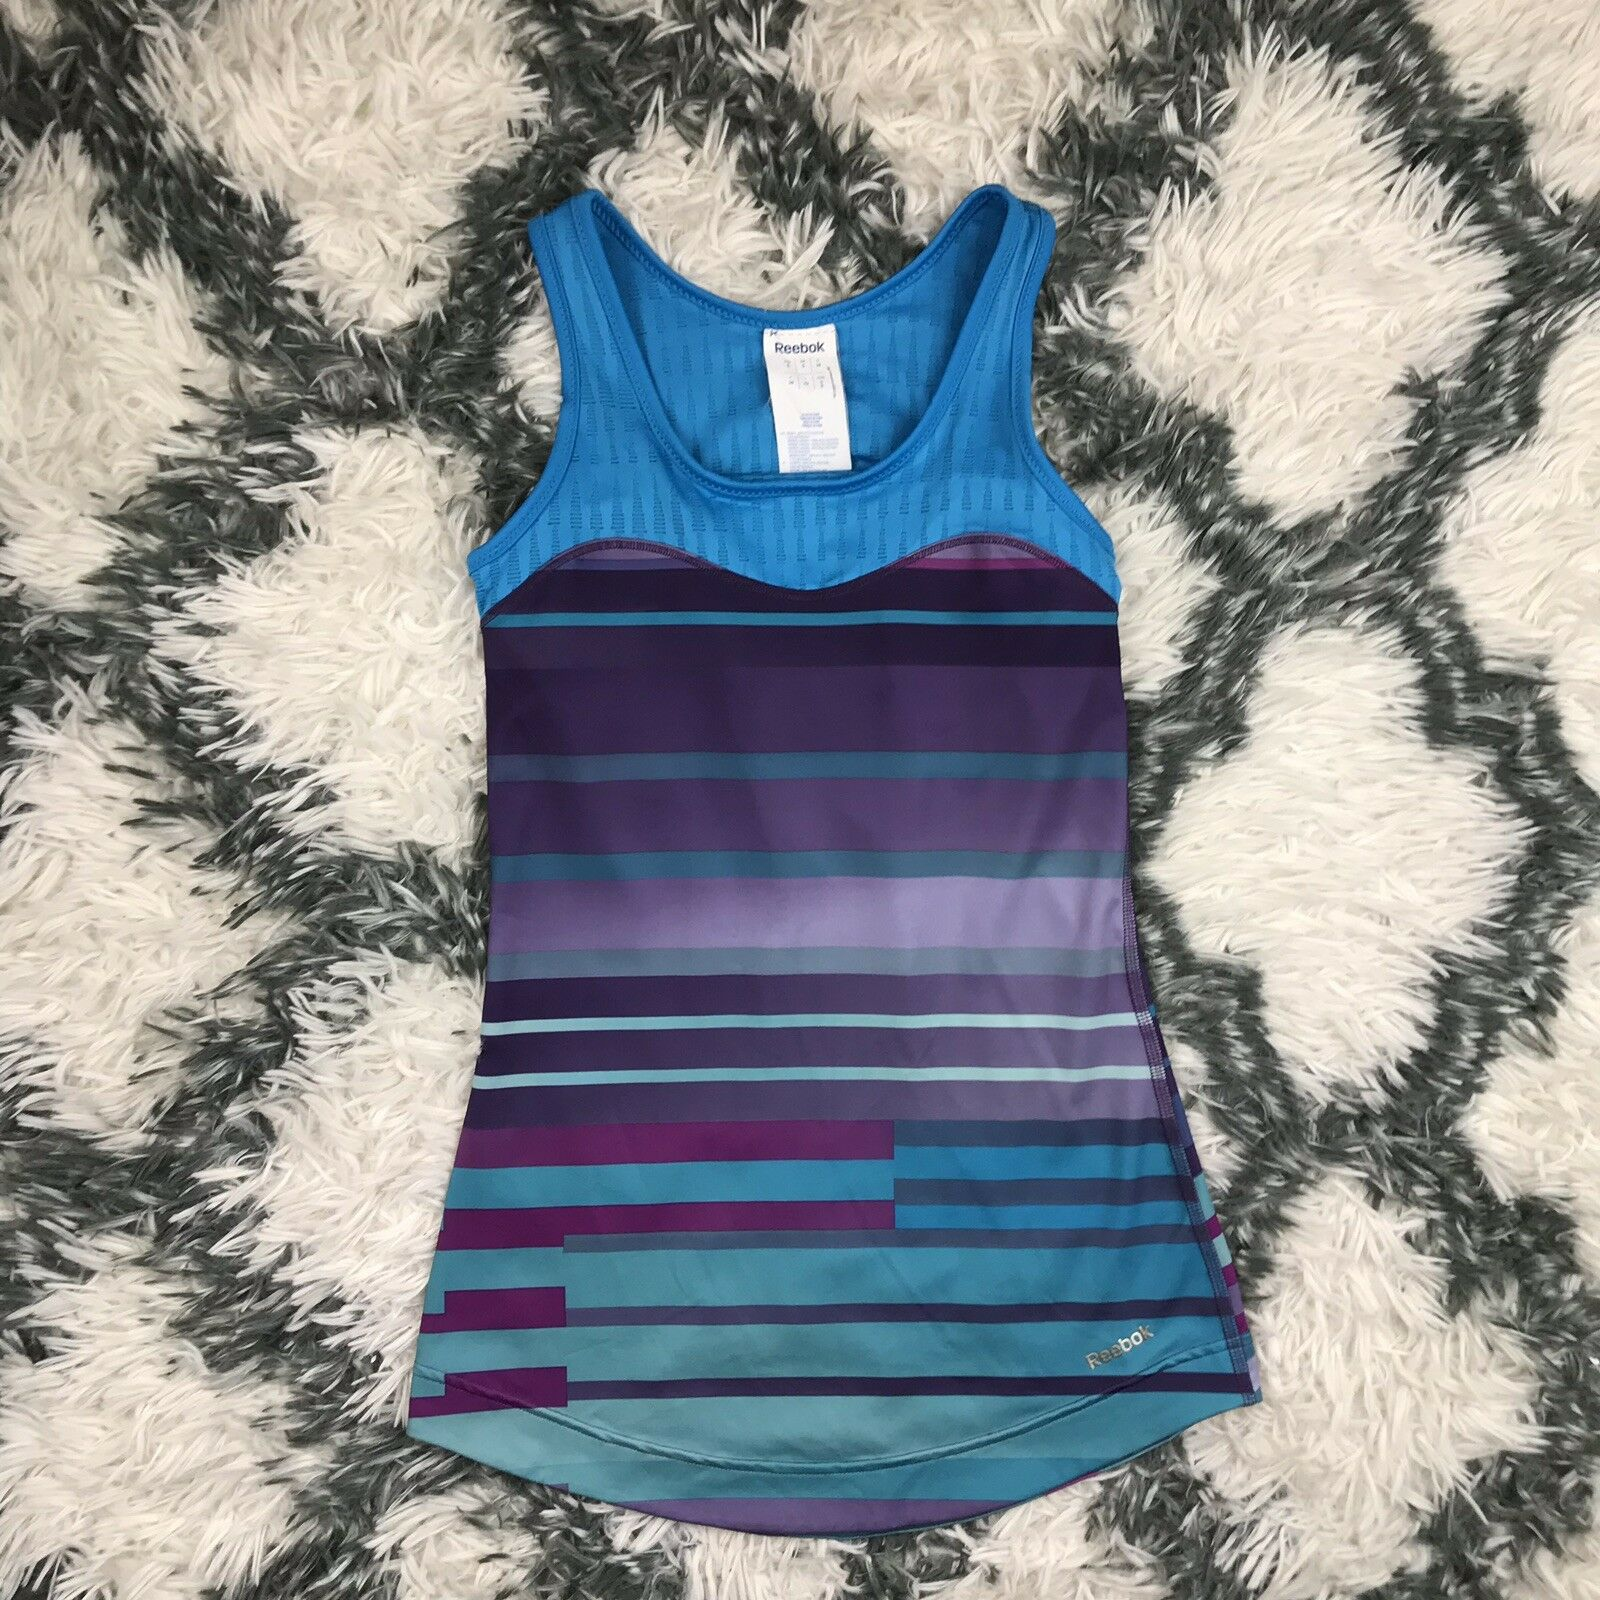 Reebok Women's Athletic Top Size Small